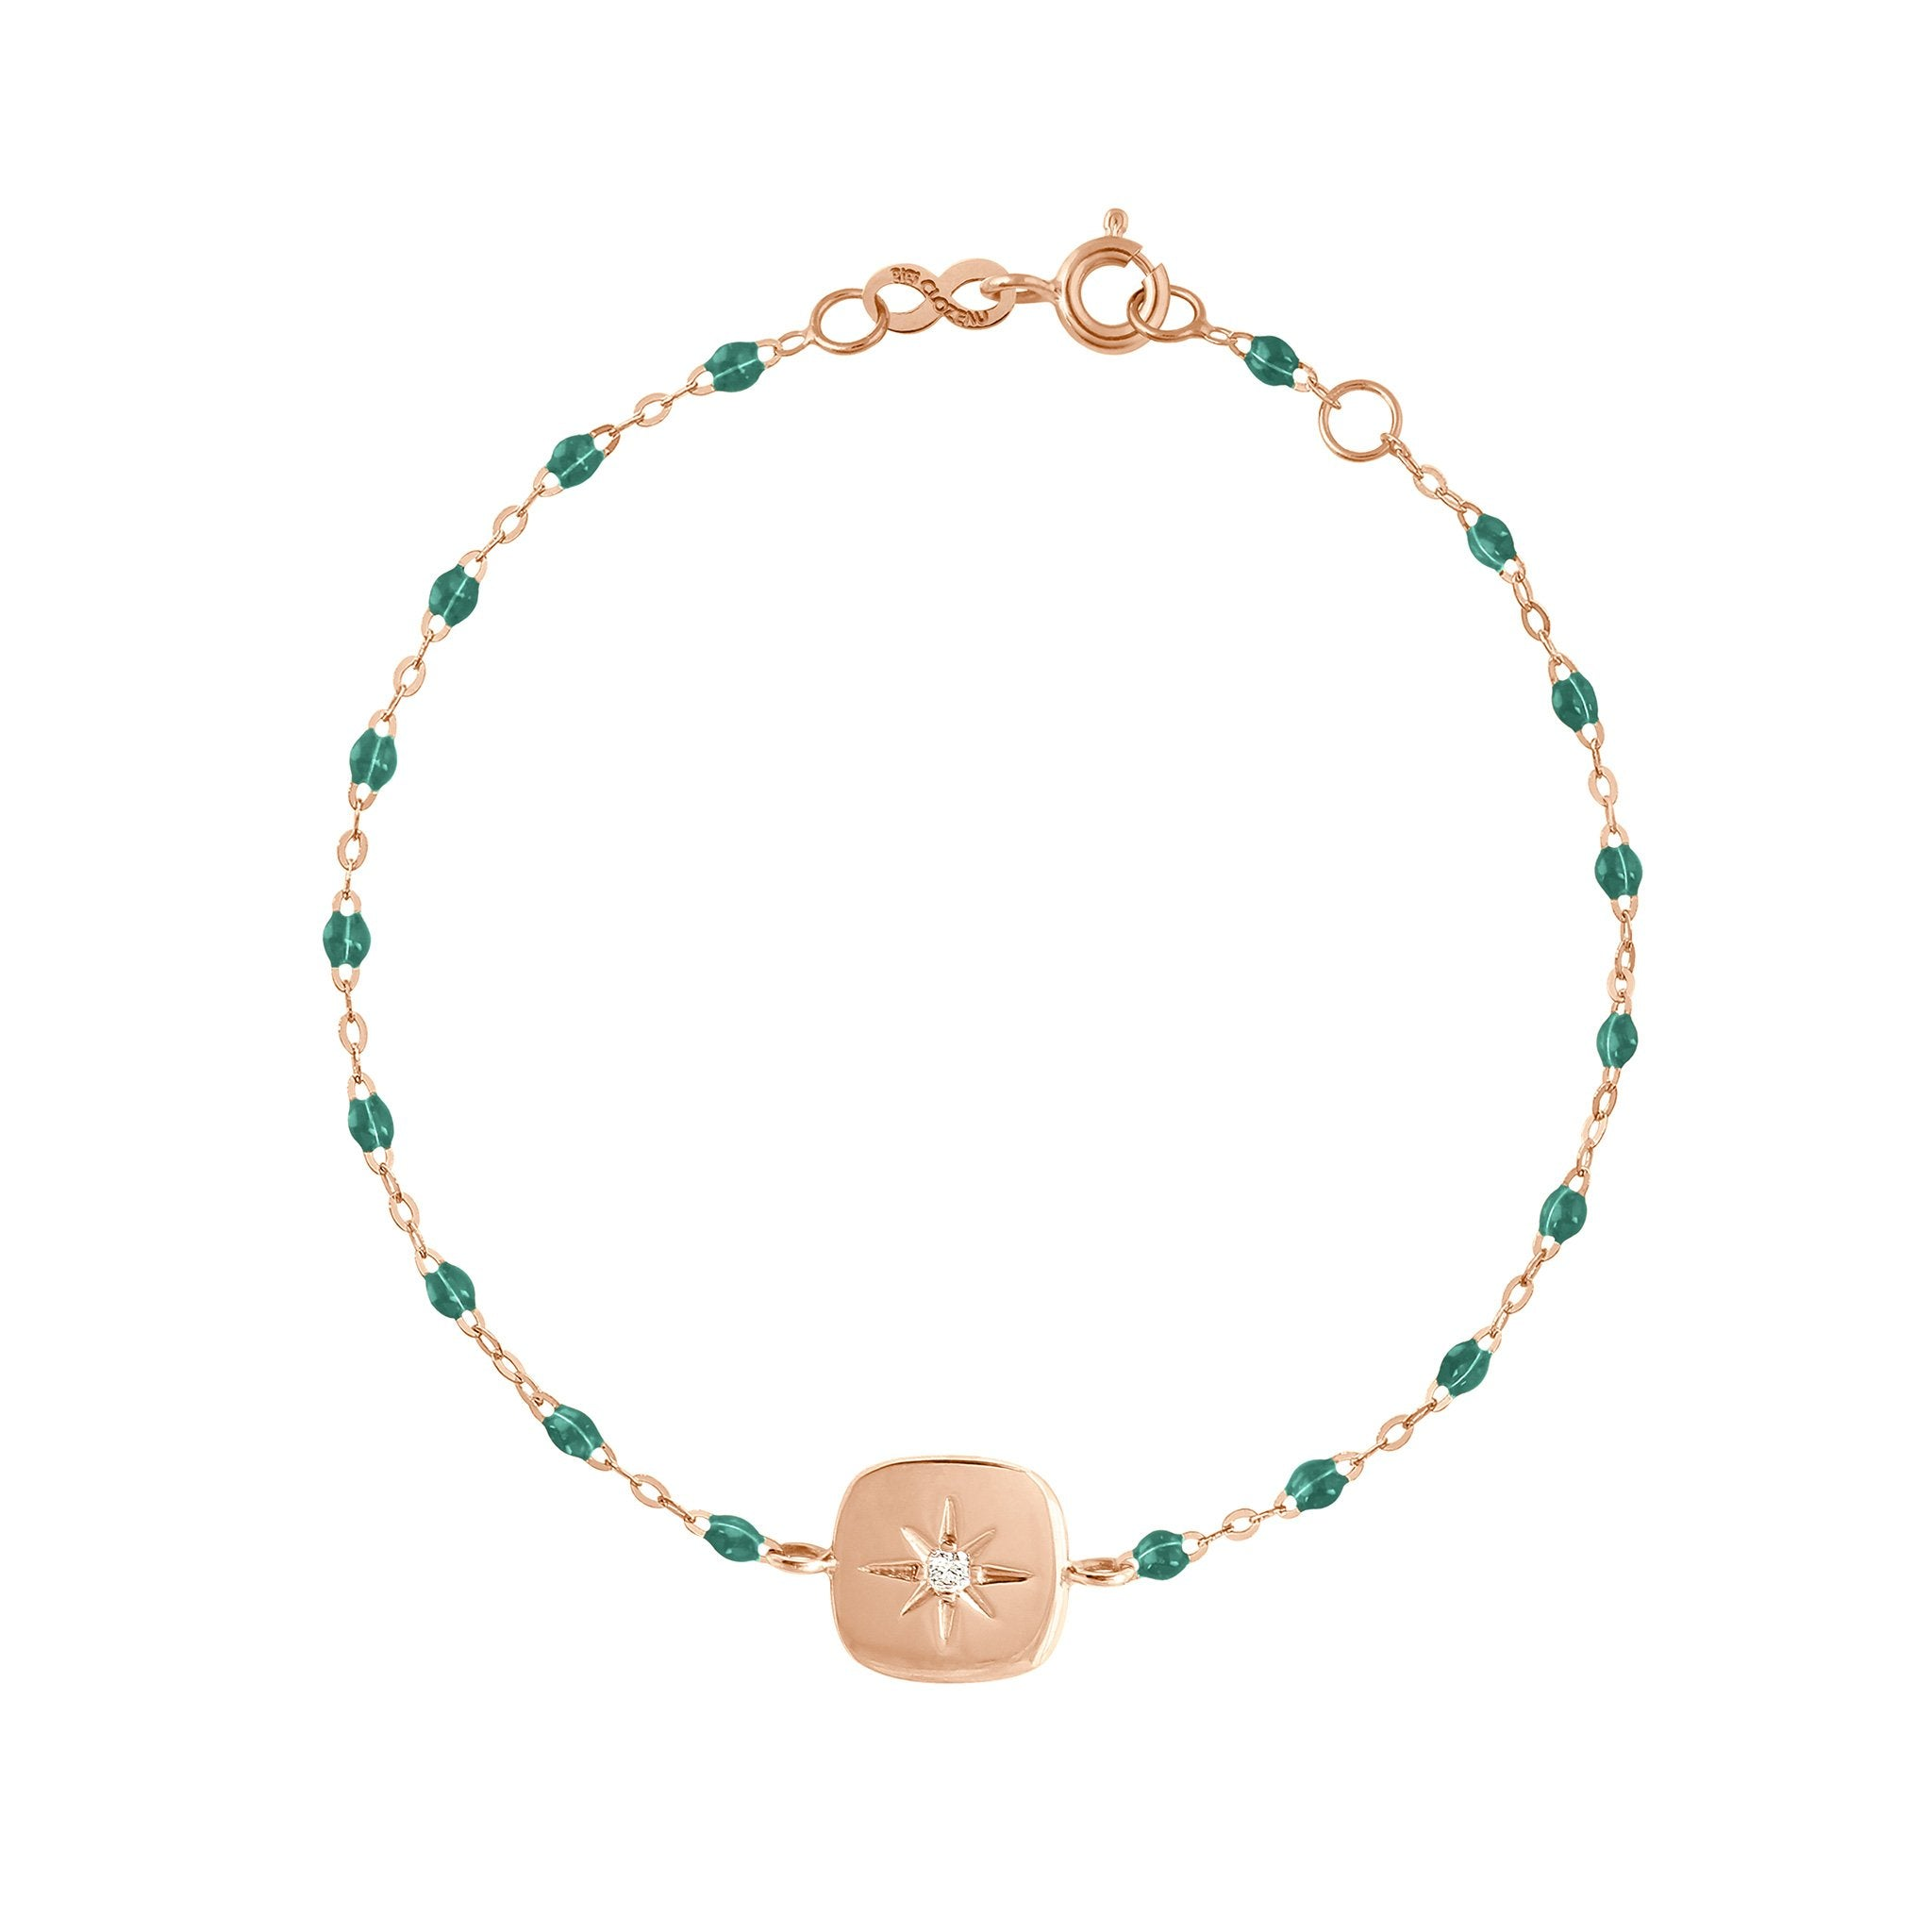 Gigi Clozeau - Miss Gigi Emerald diamond bracelet, Rose Gold, 6.7